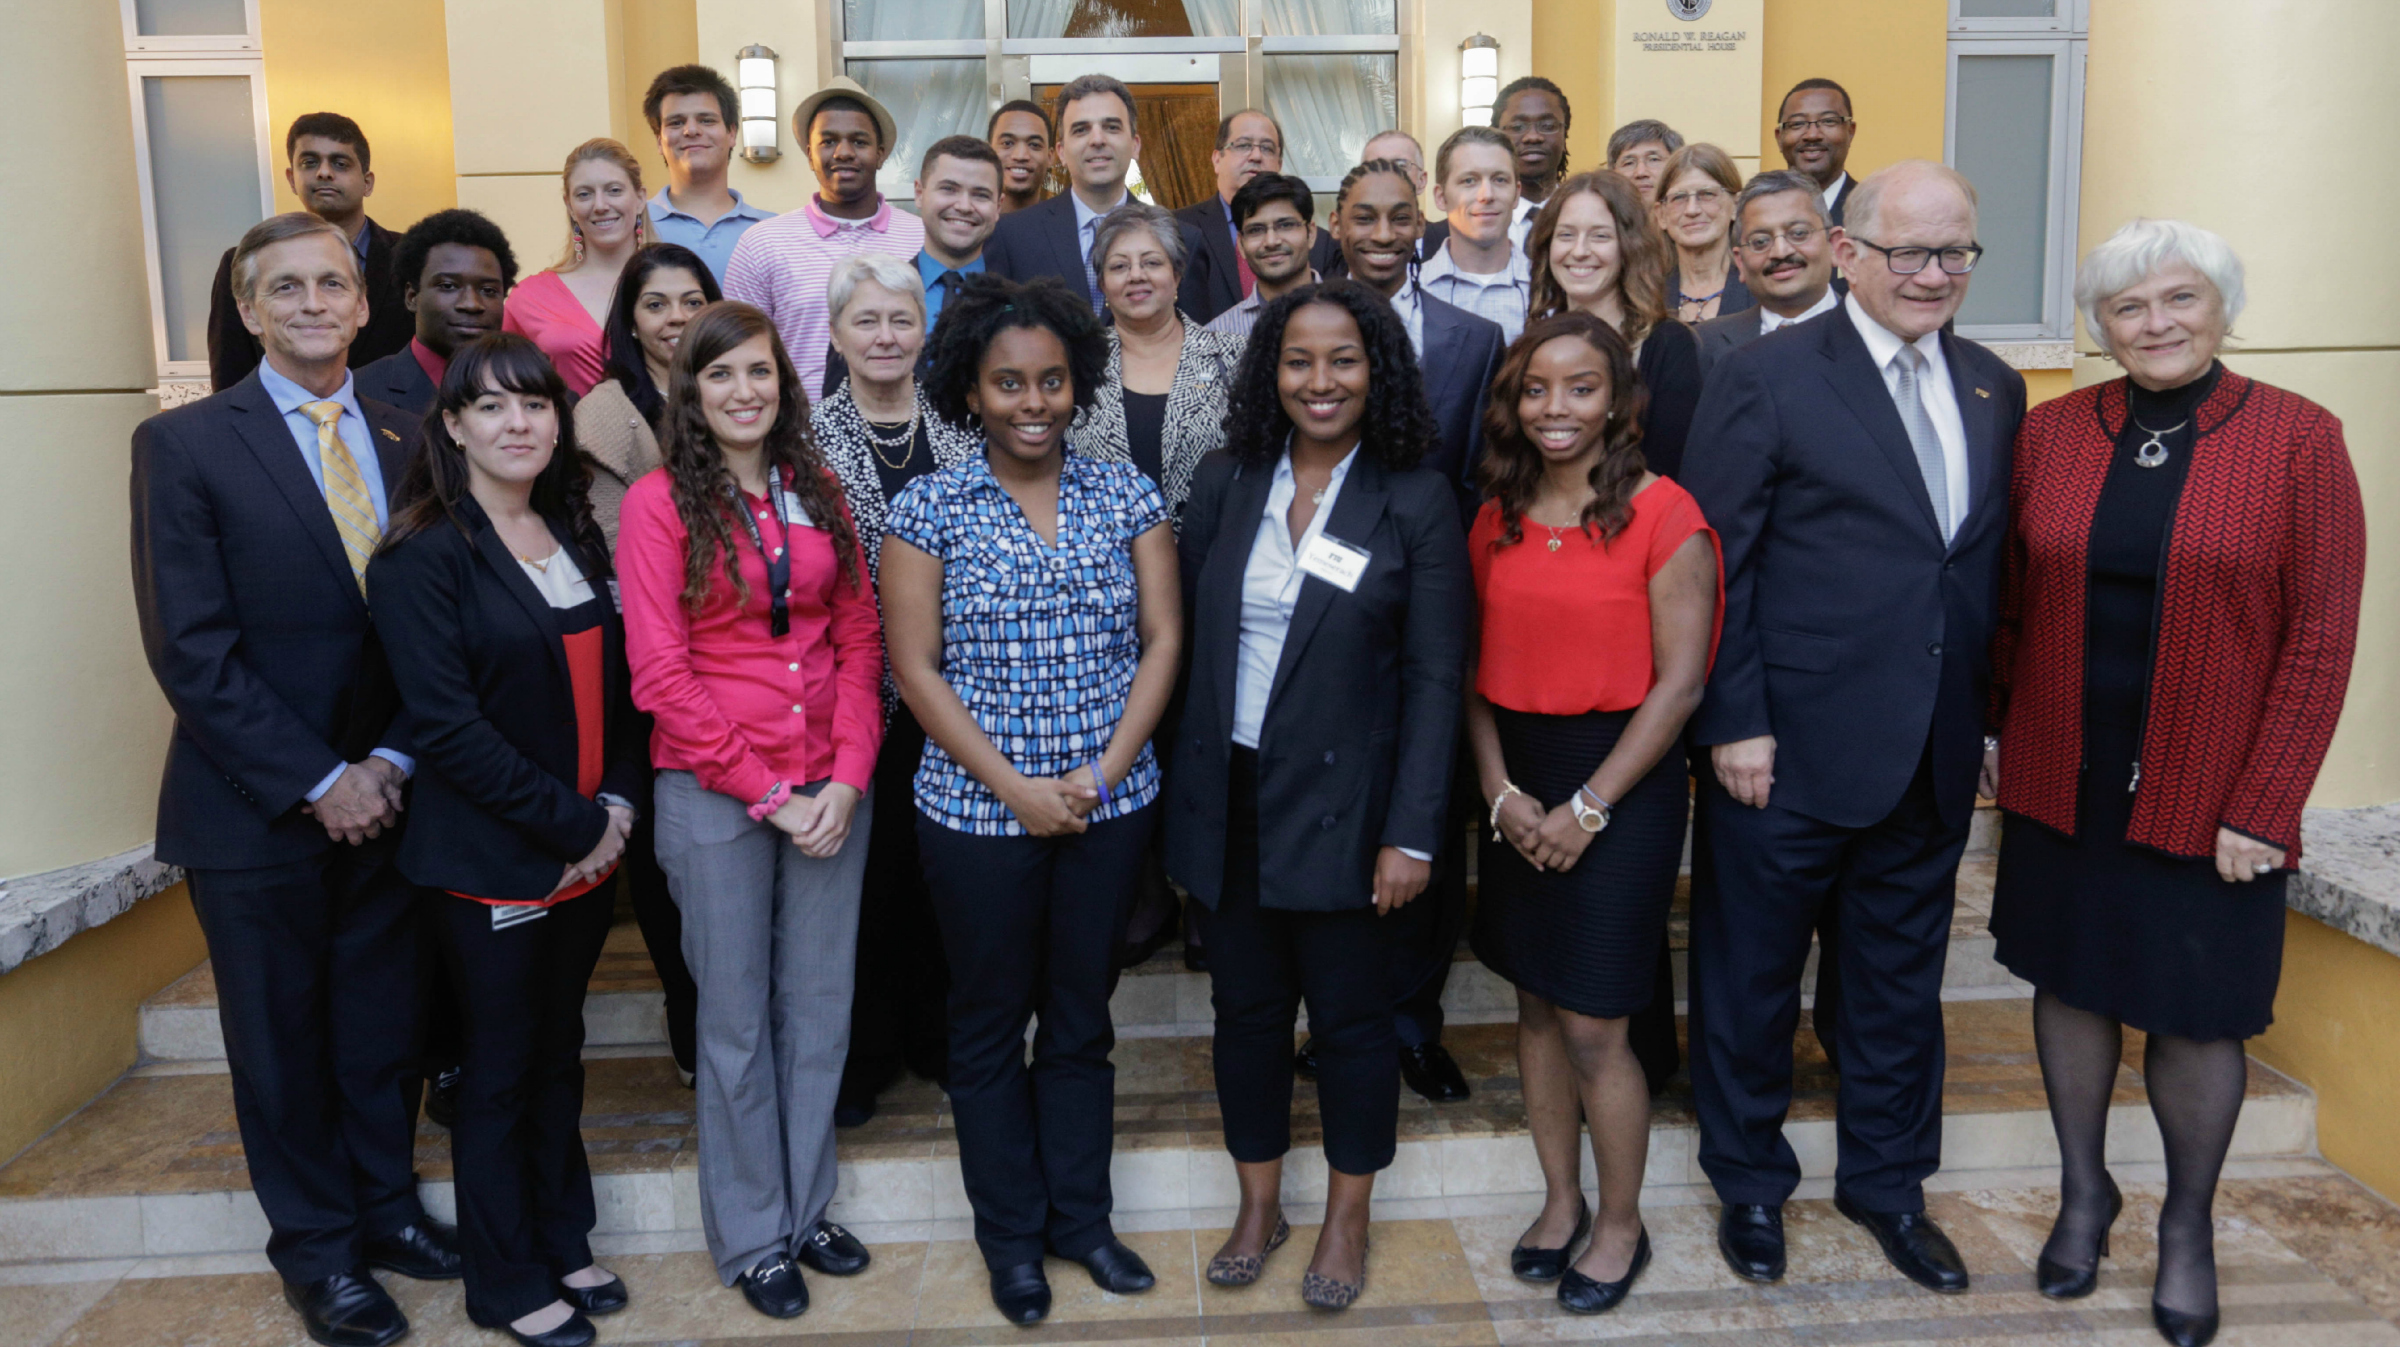 Members of the Bridge to the Doctorate program's current cohort celebrated with faculty mentors and university leaders at a reception with President Rosenberg.